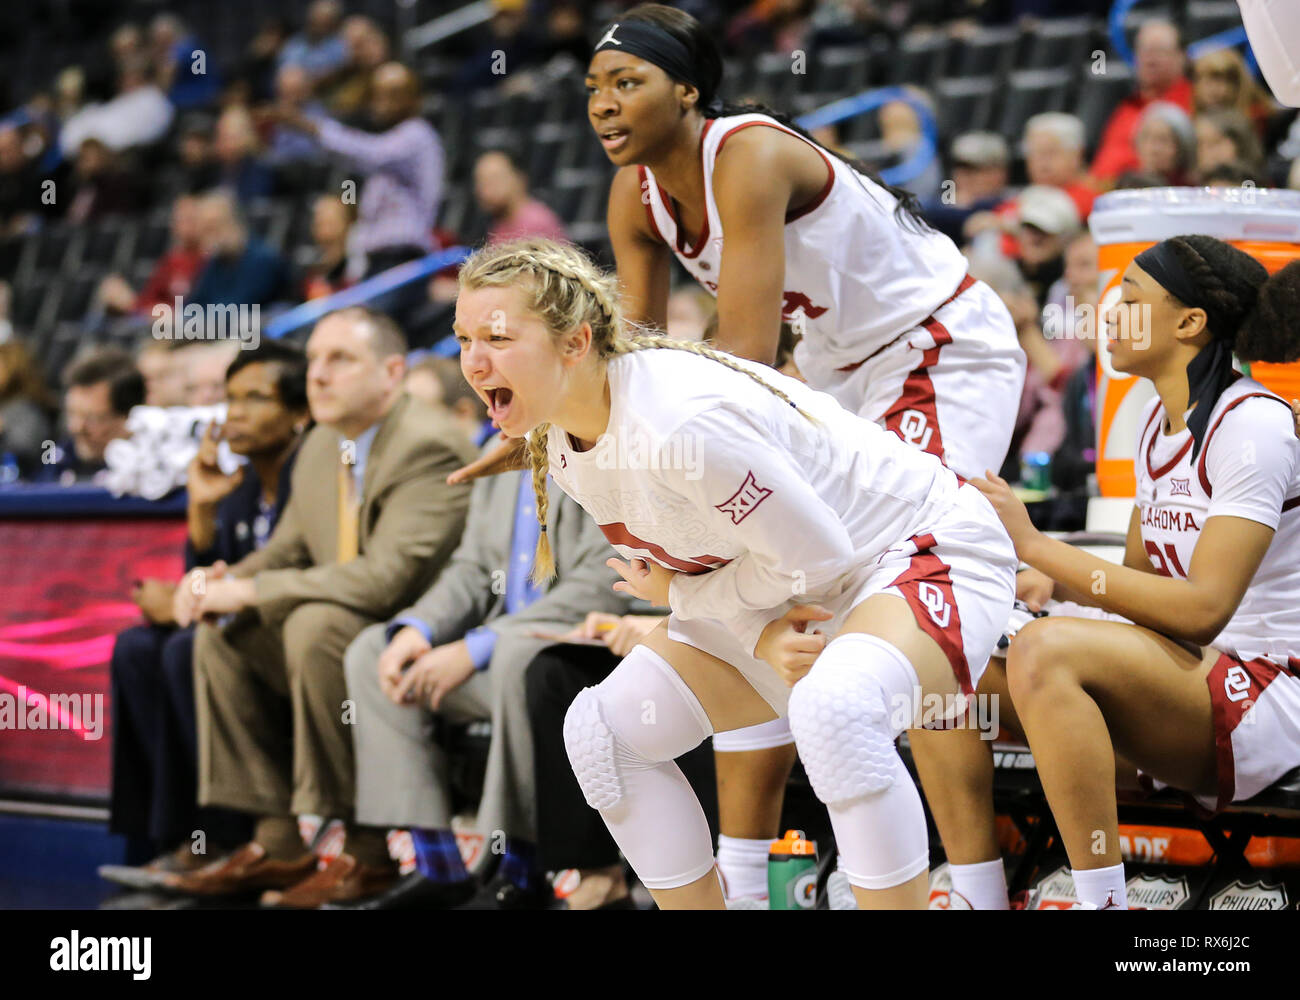 e30ba18c997 University of Oklahoma players celebrate during a Phillips 66 Big 12 Womens  Basketball Championship Tournament game between the Oklahoma Sooners and  the ...